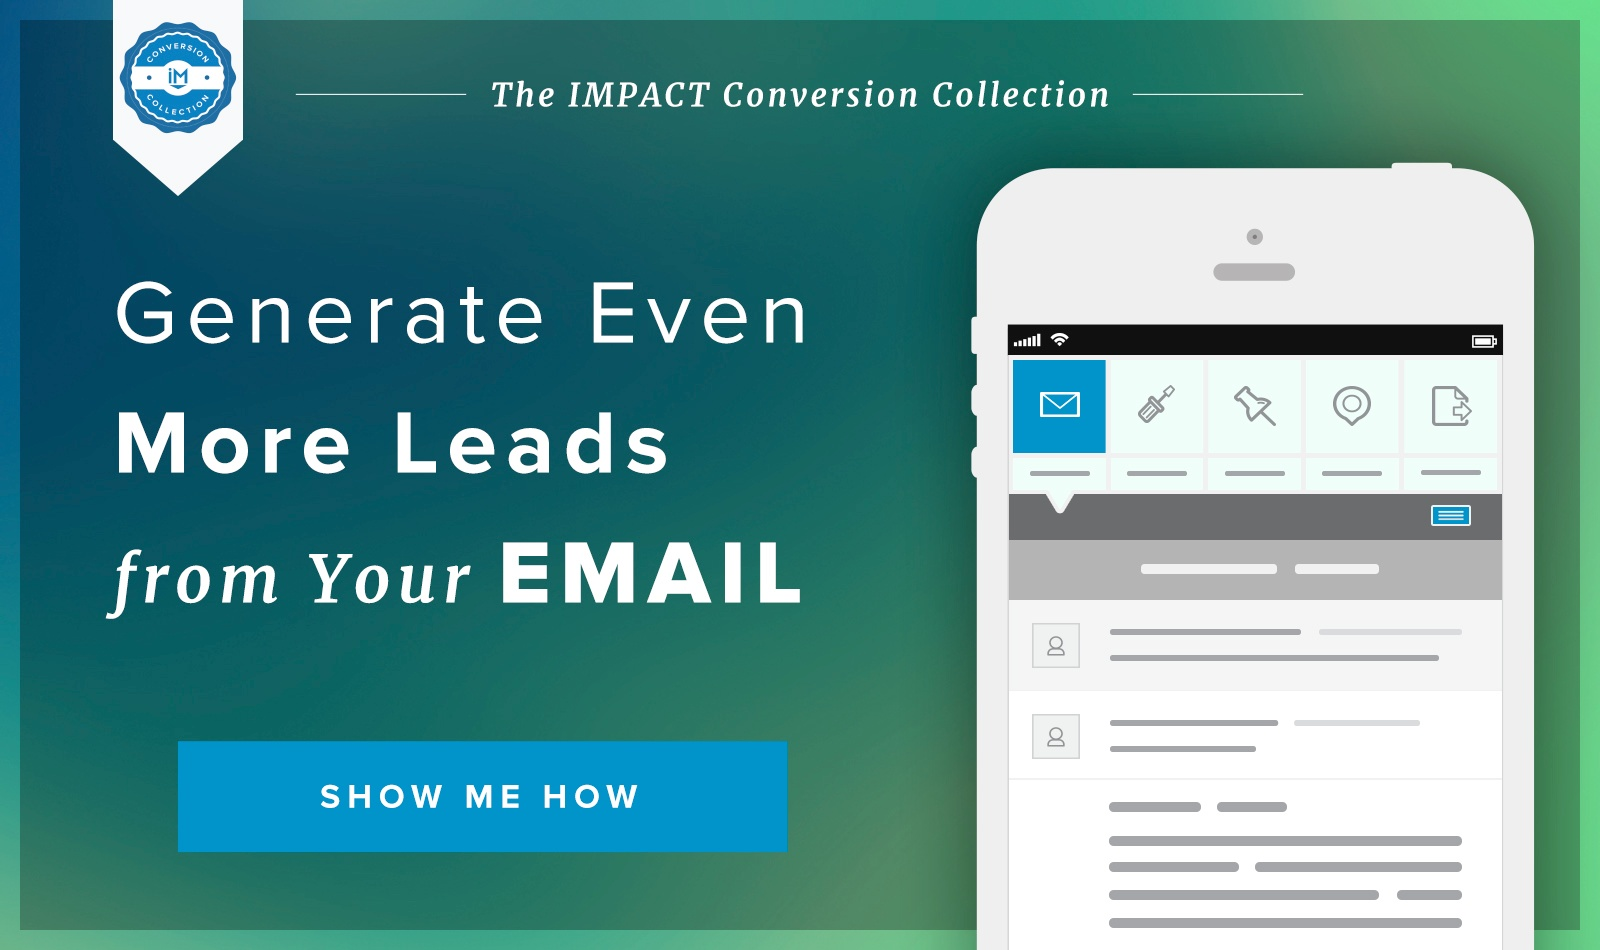 generate-more-leads-from-email